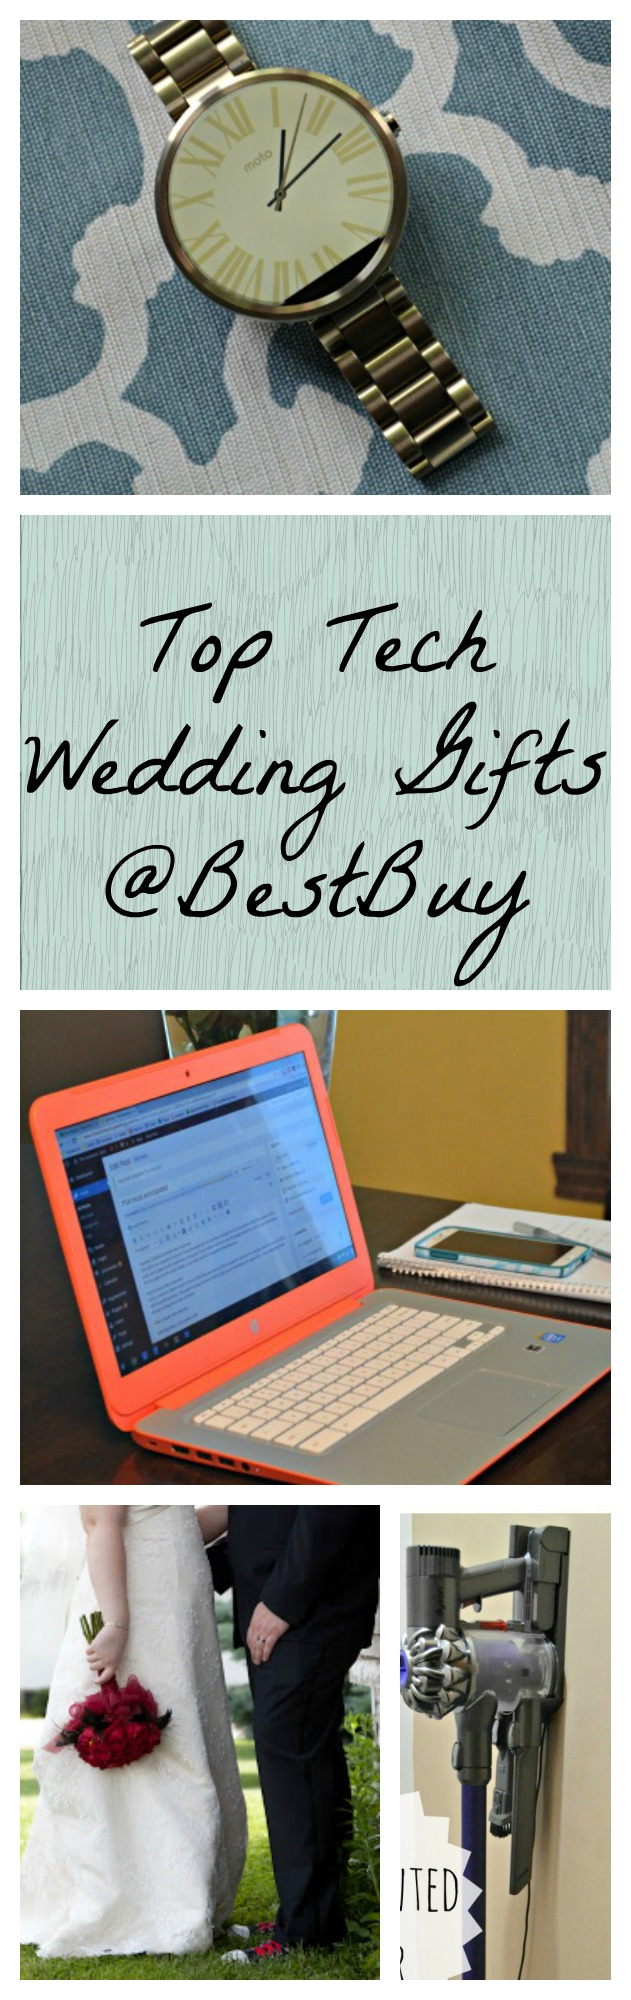 Top Tech Wedding Gifts at Best Buy